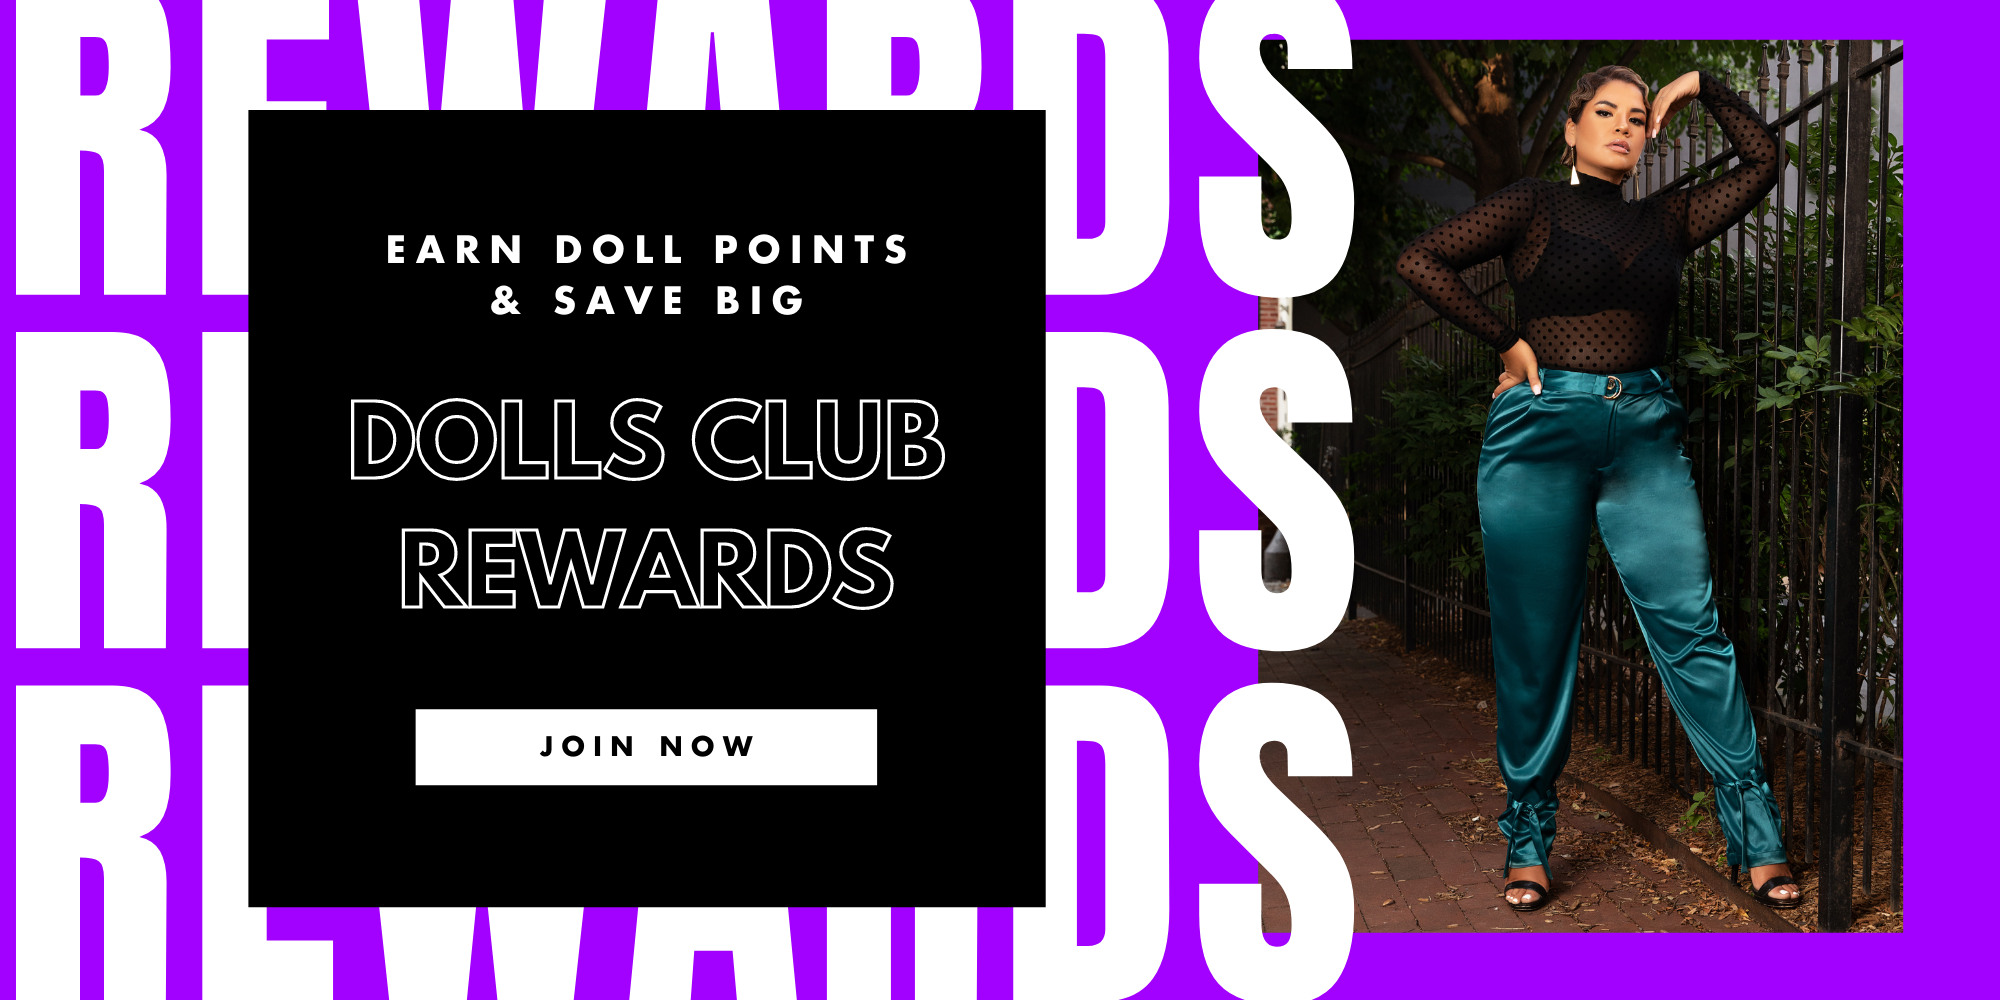 Join the Dolls Club Rewards Program and start earning points towards coupons!